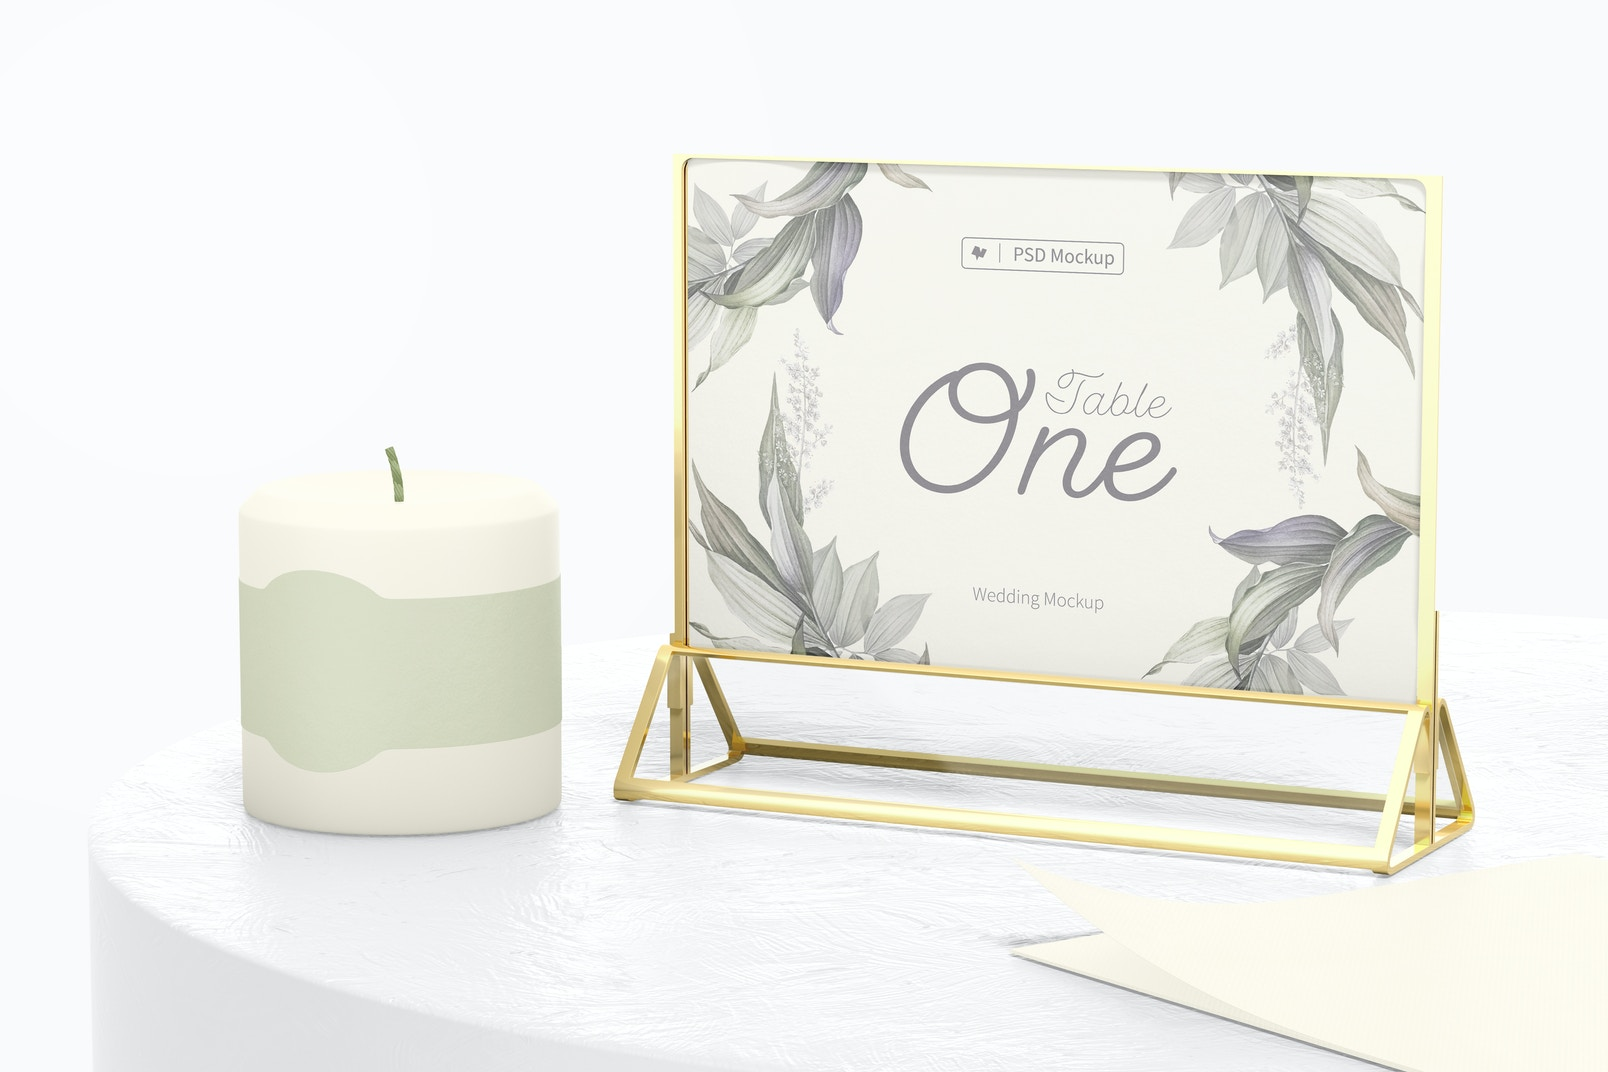 Acrylic Table Card Frame Mockup, with Candle